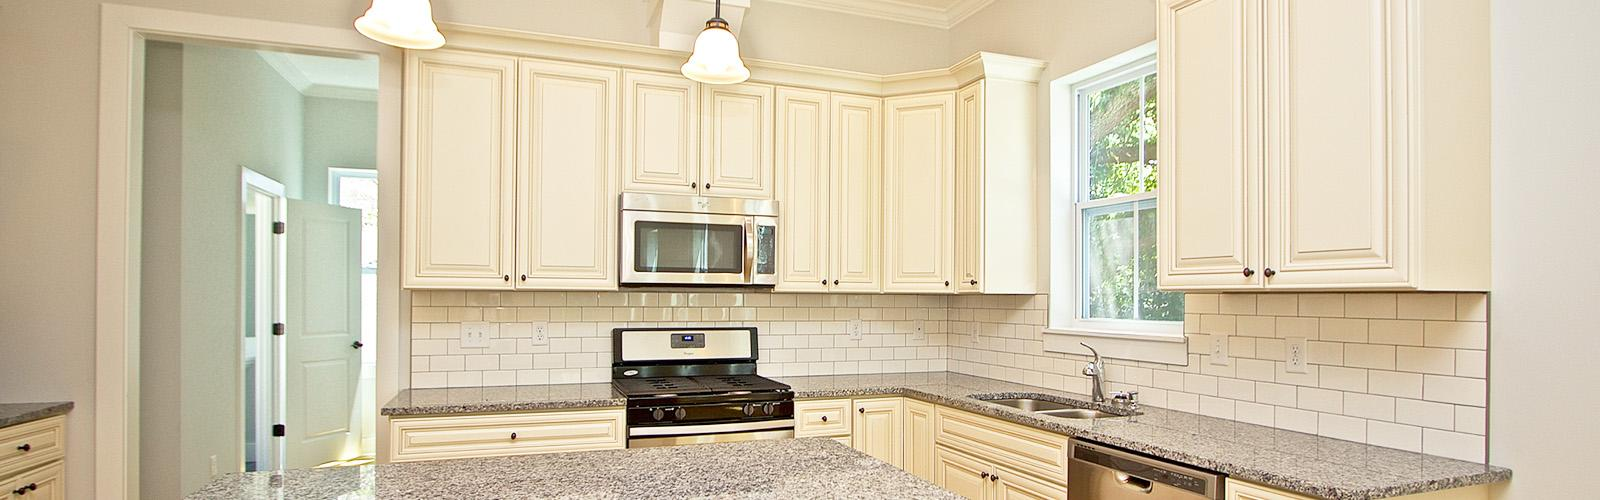 Kitchen Design Store Knoxville Tn Home Wholesale Cabinets Warehouse